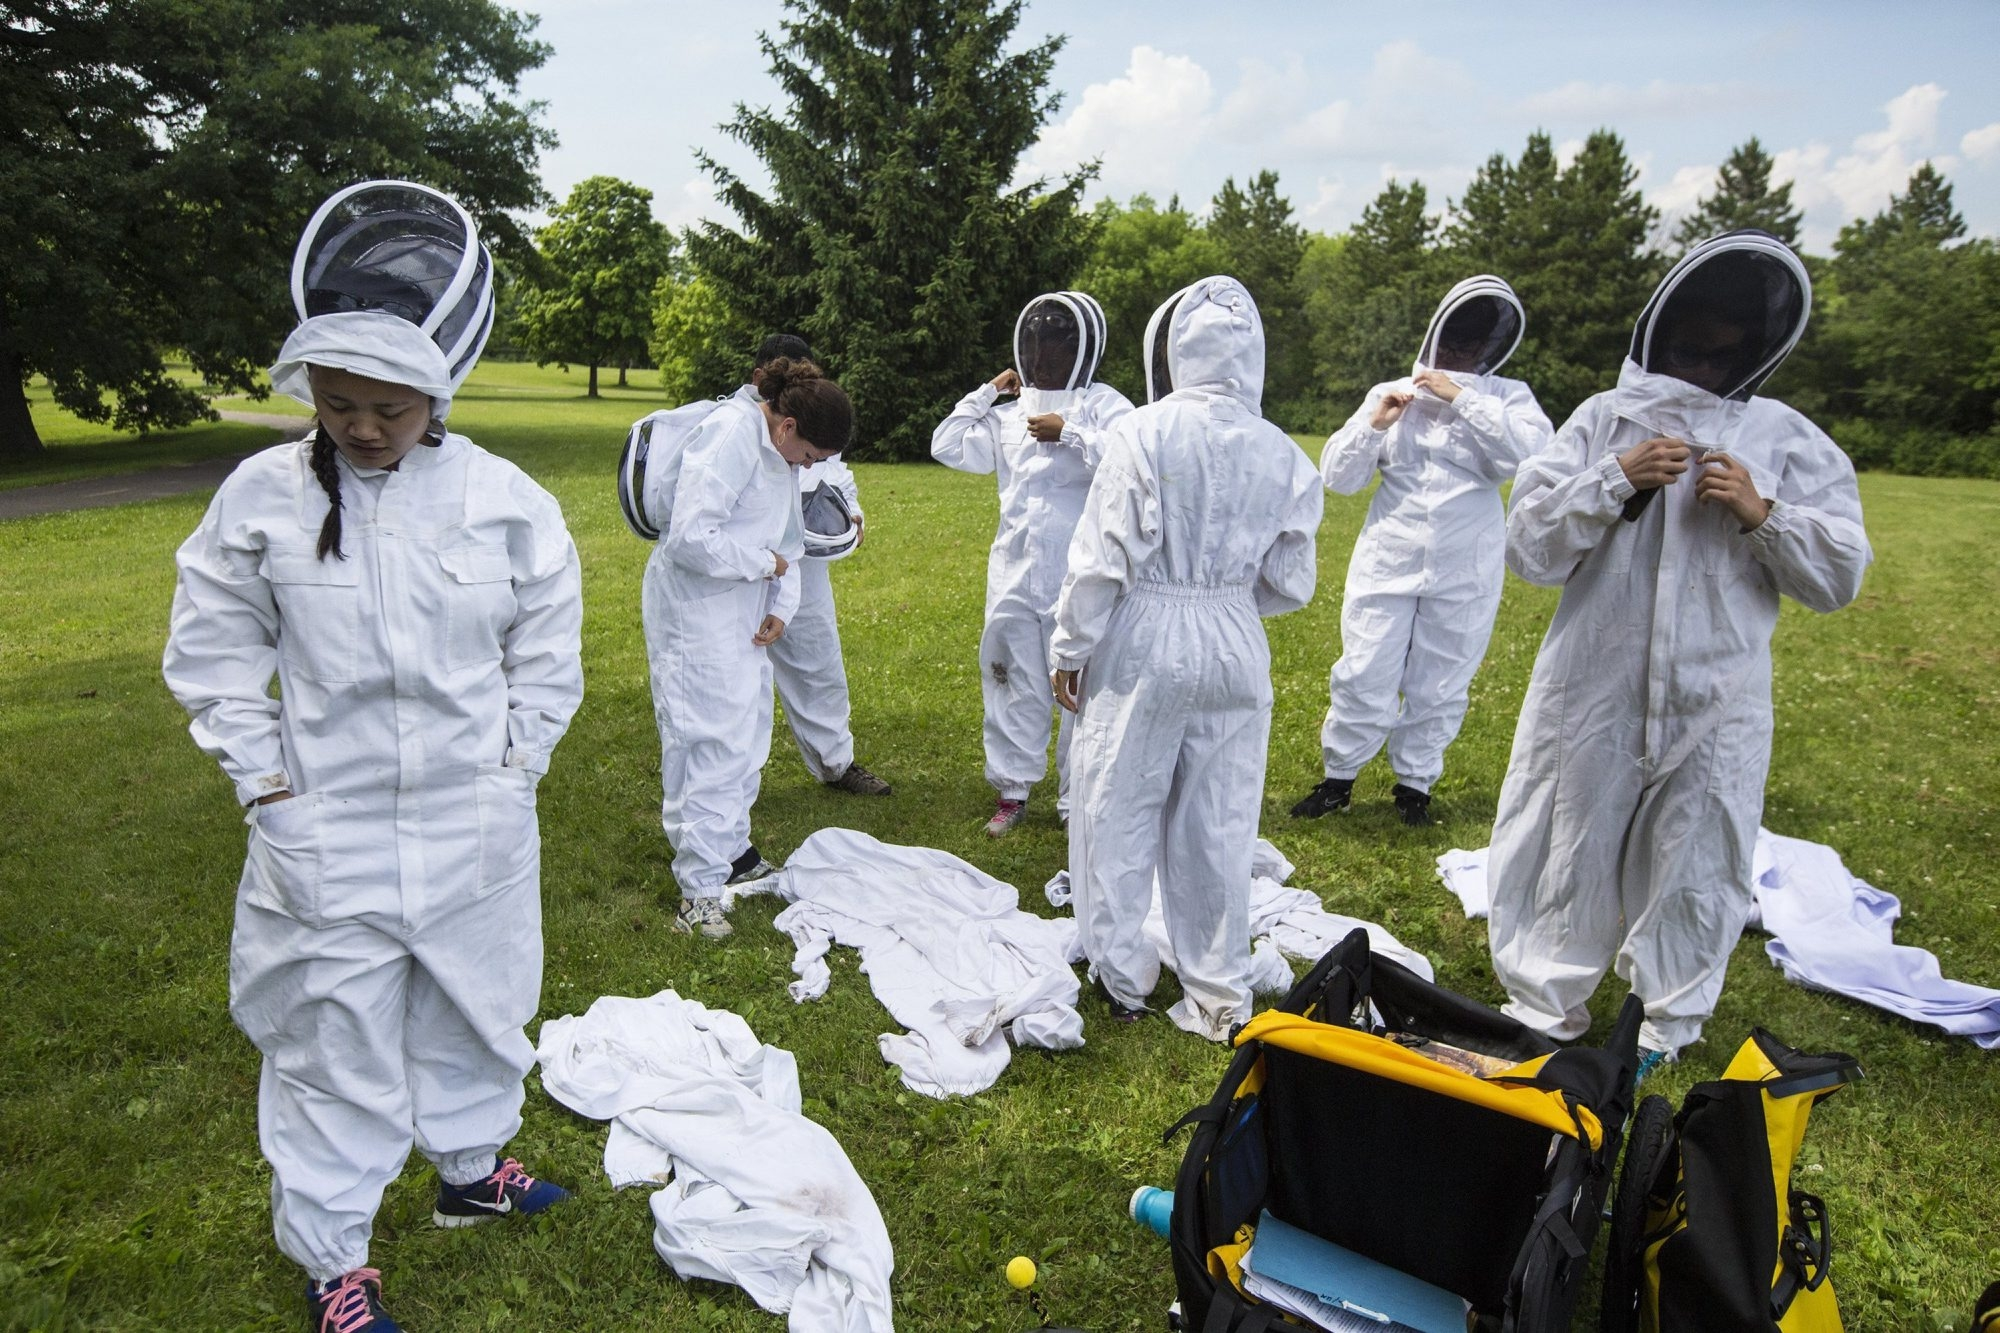 A group of people from General Mills suit up to visit a bee hive with Erin Rupp, of the Beez Kneez, as she teaches a class about bees at JD Rivers Children's Garden in Minneapolis on June 26, 2014. (Renee Jones Schneider/Minneapolis Star Tribune/MCT)